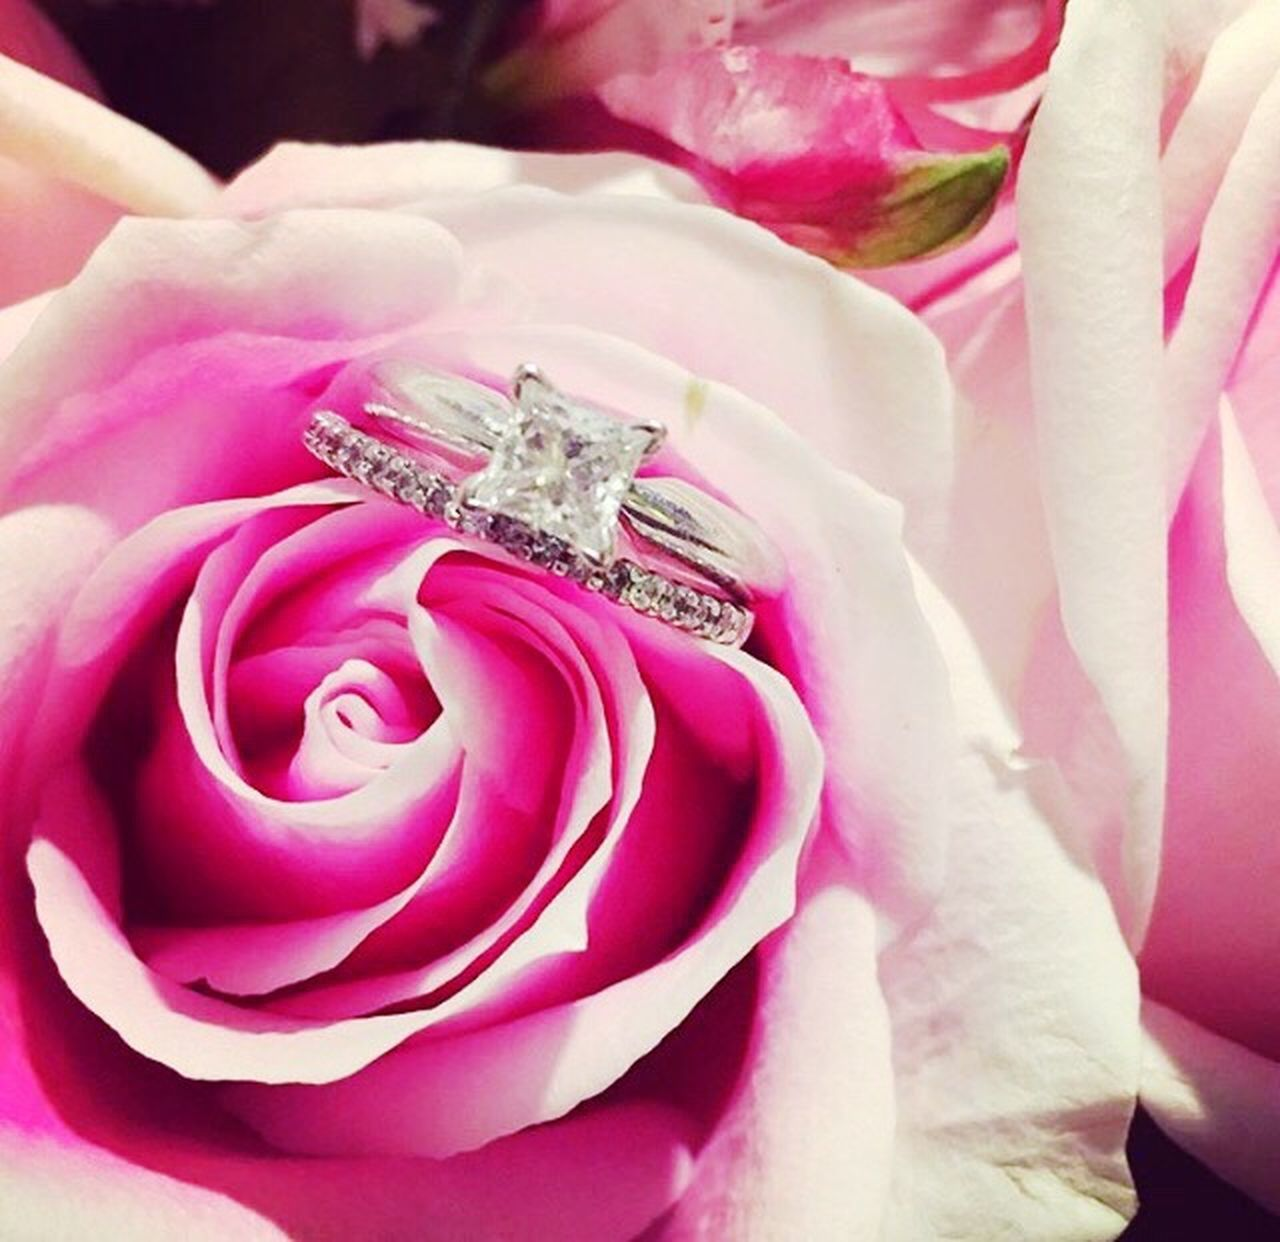 flower, pink color, petal, wedding, rose - flower, flower head, close-up, fragility, nature, beauty in nature, love, no people, diamond ring, freshness, backgrounds, day, outdoors